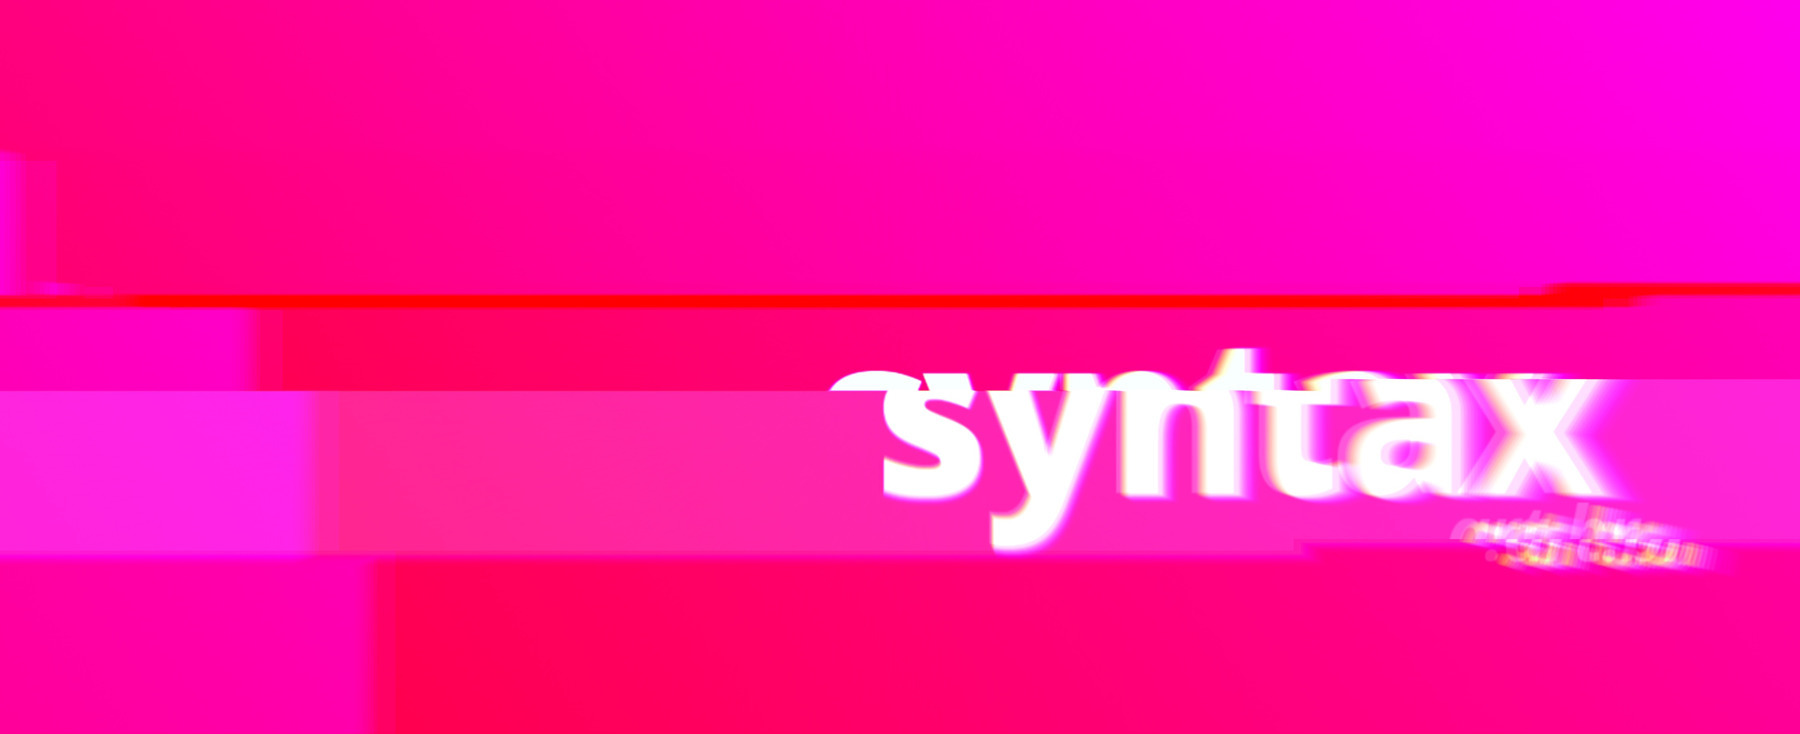 Syntax (@syntax) Cover Image